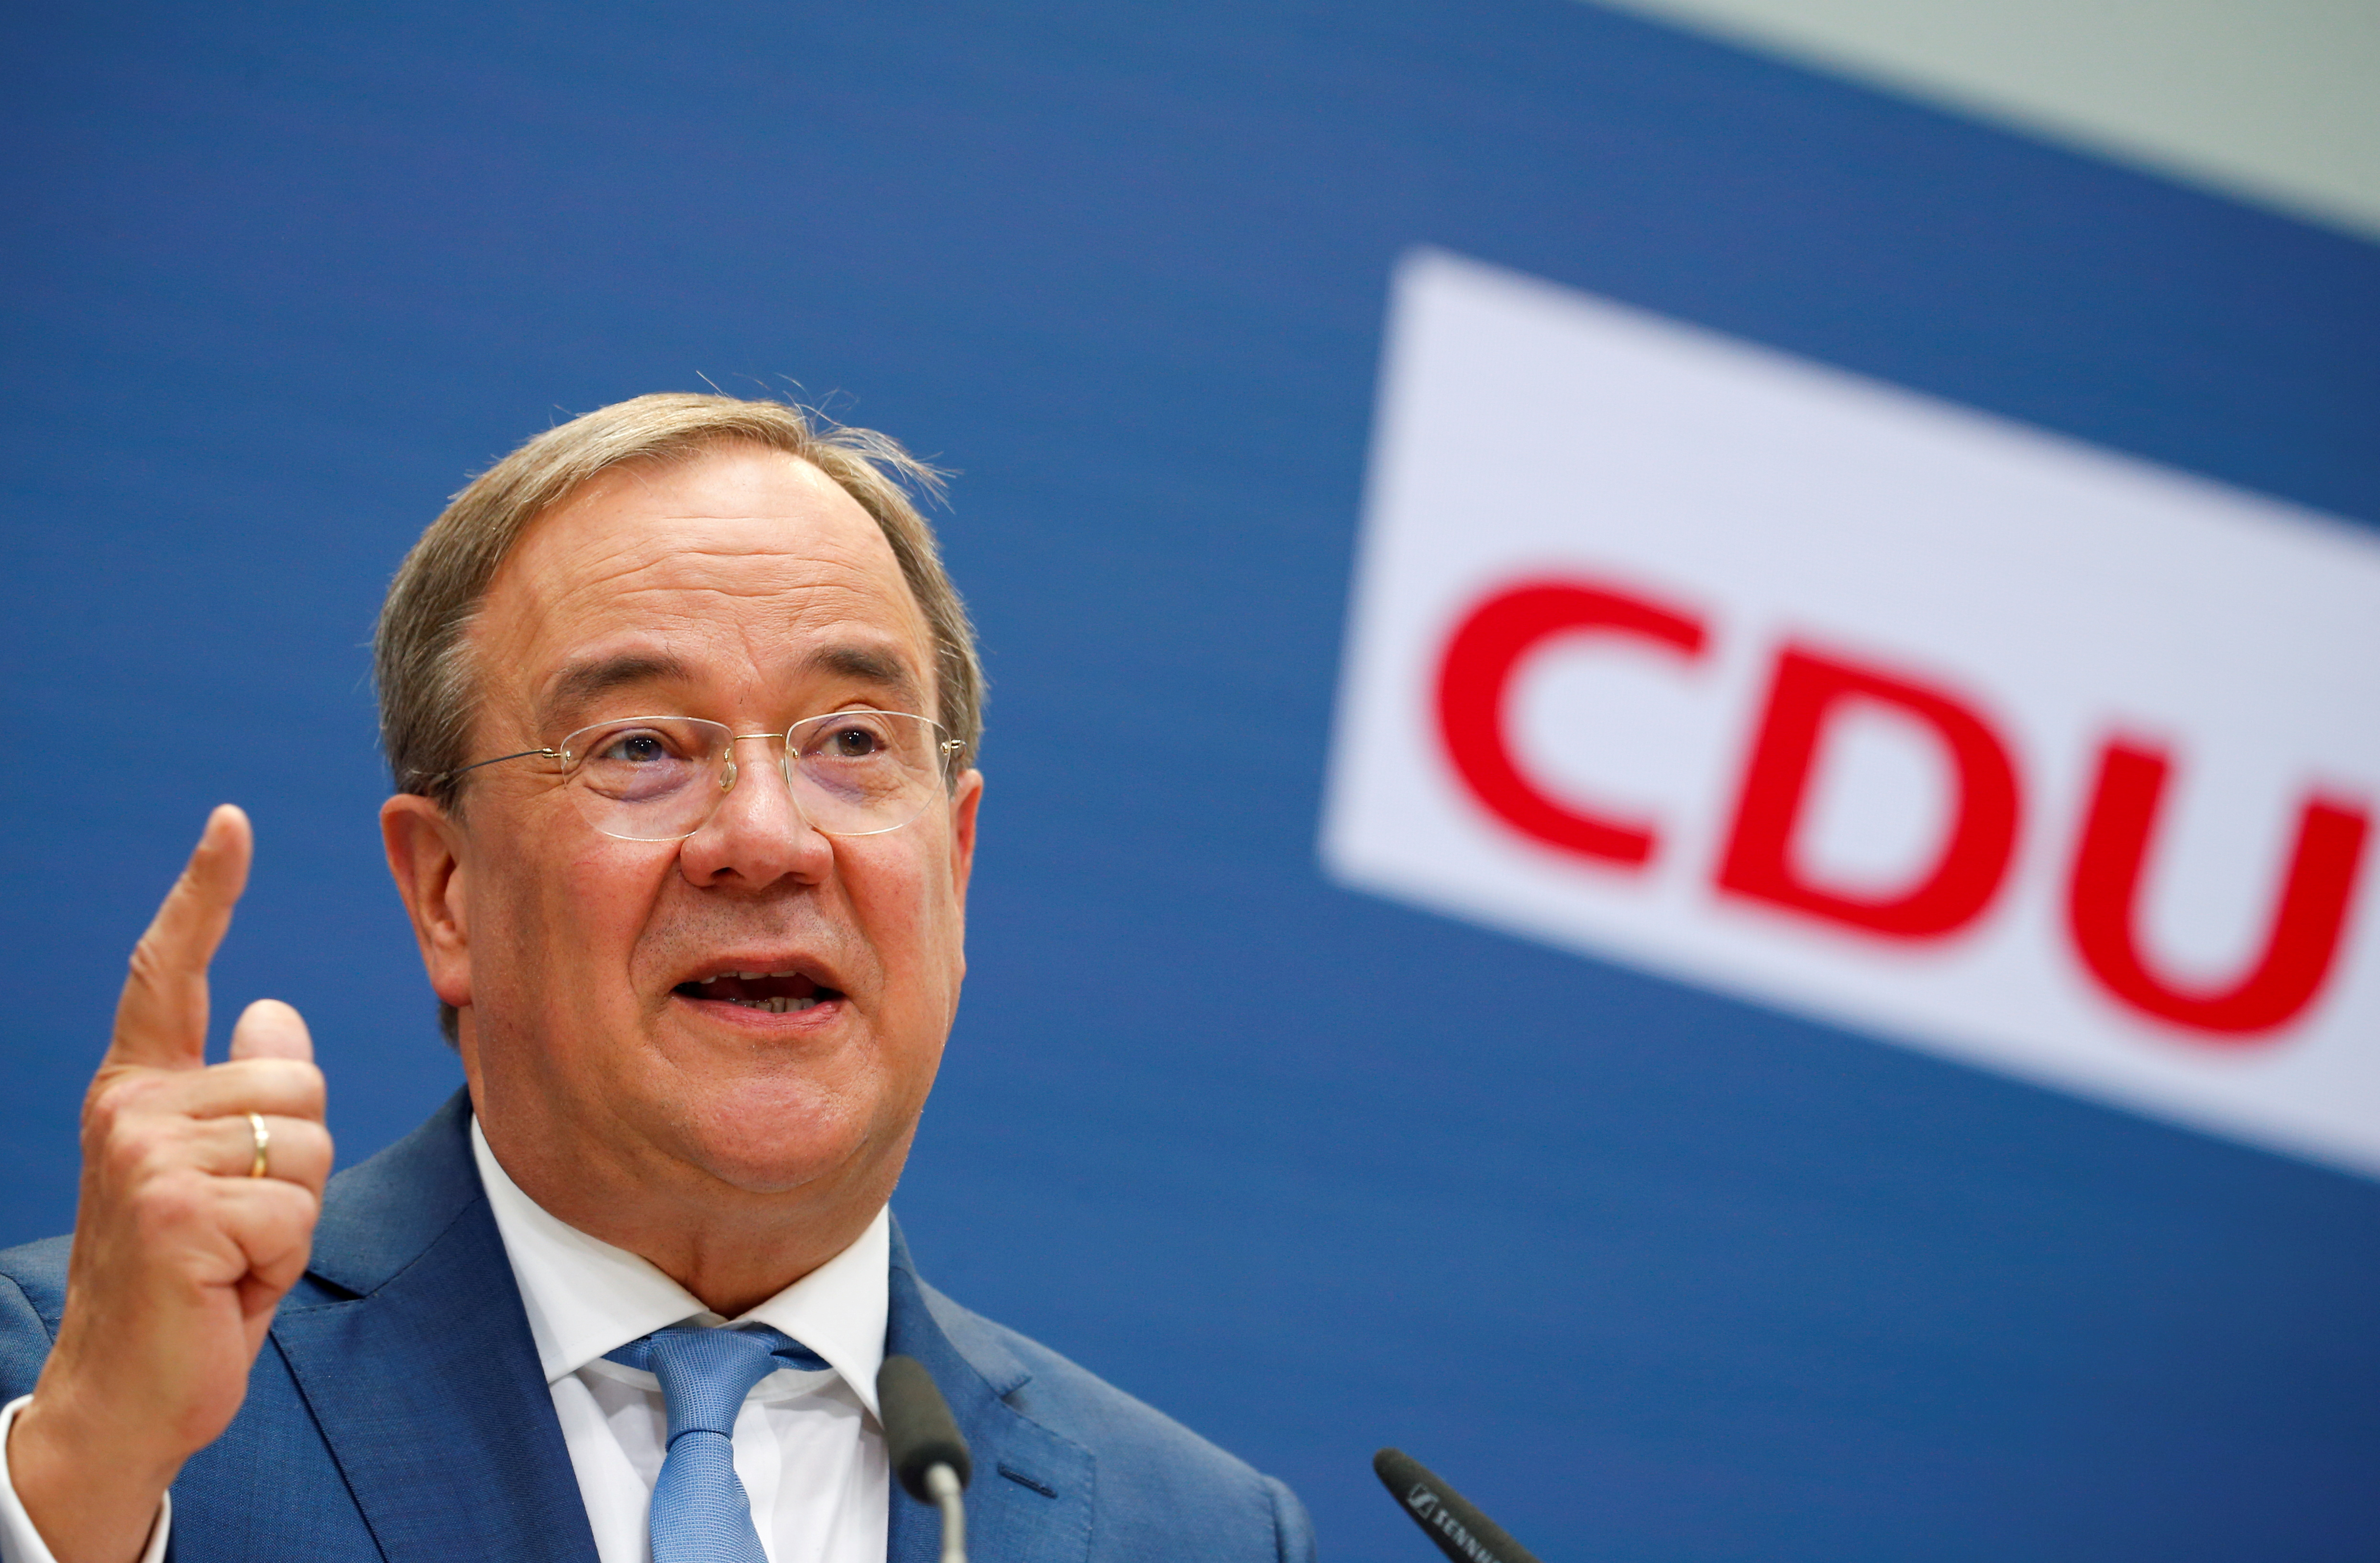 Christian Democratic Union (CDU) candidate for chancellor Armin Laschet holds a news conference in Berlin, Germany, September 13, 2021. REUTERS/Michele Tantussi/File Photo